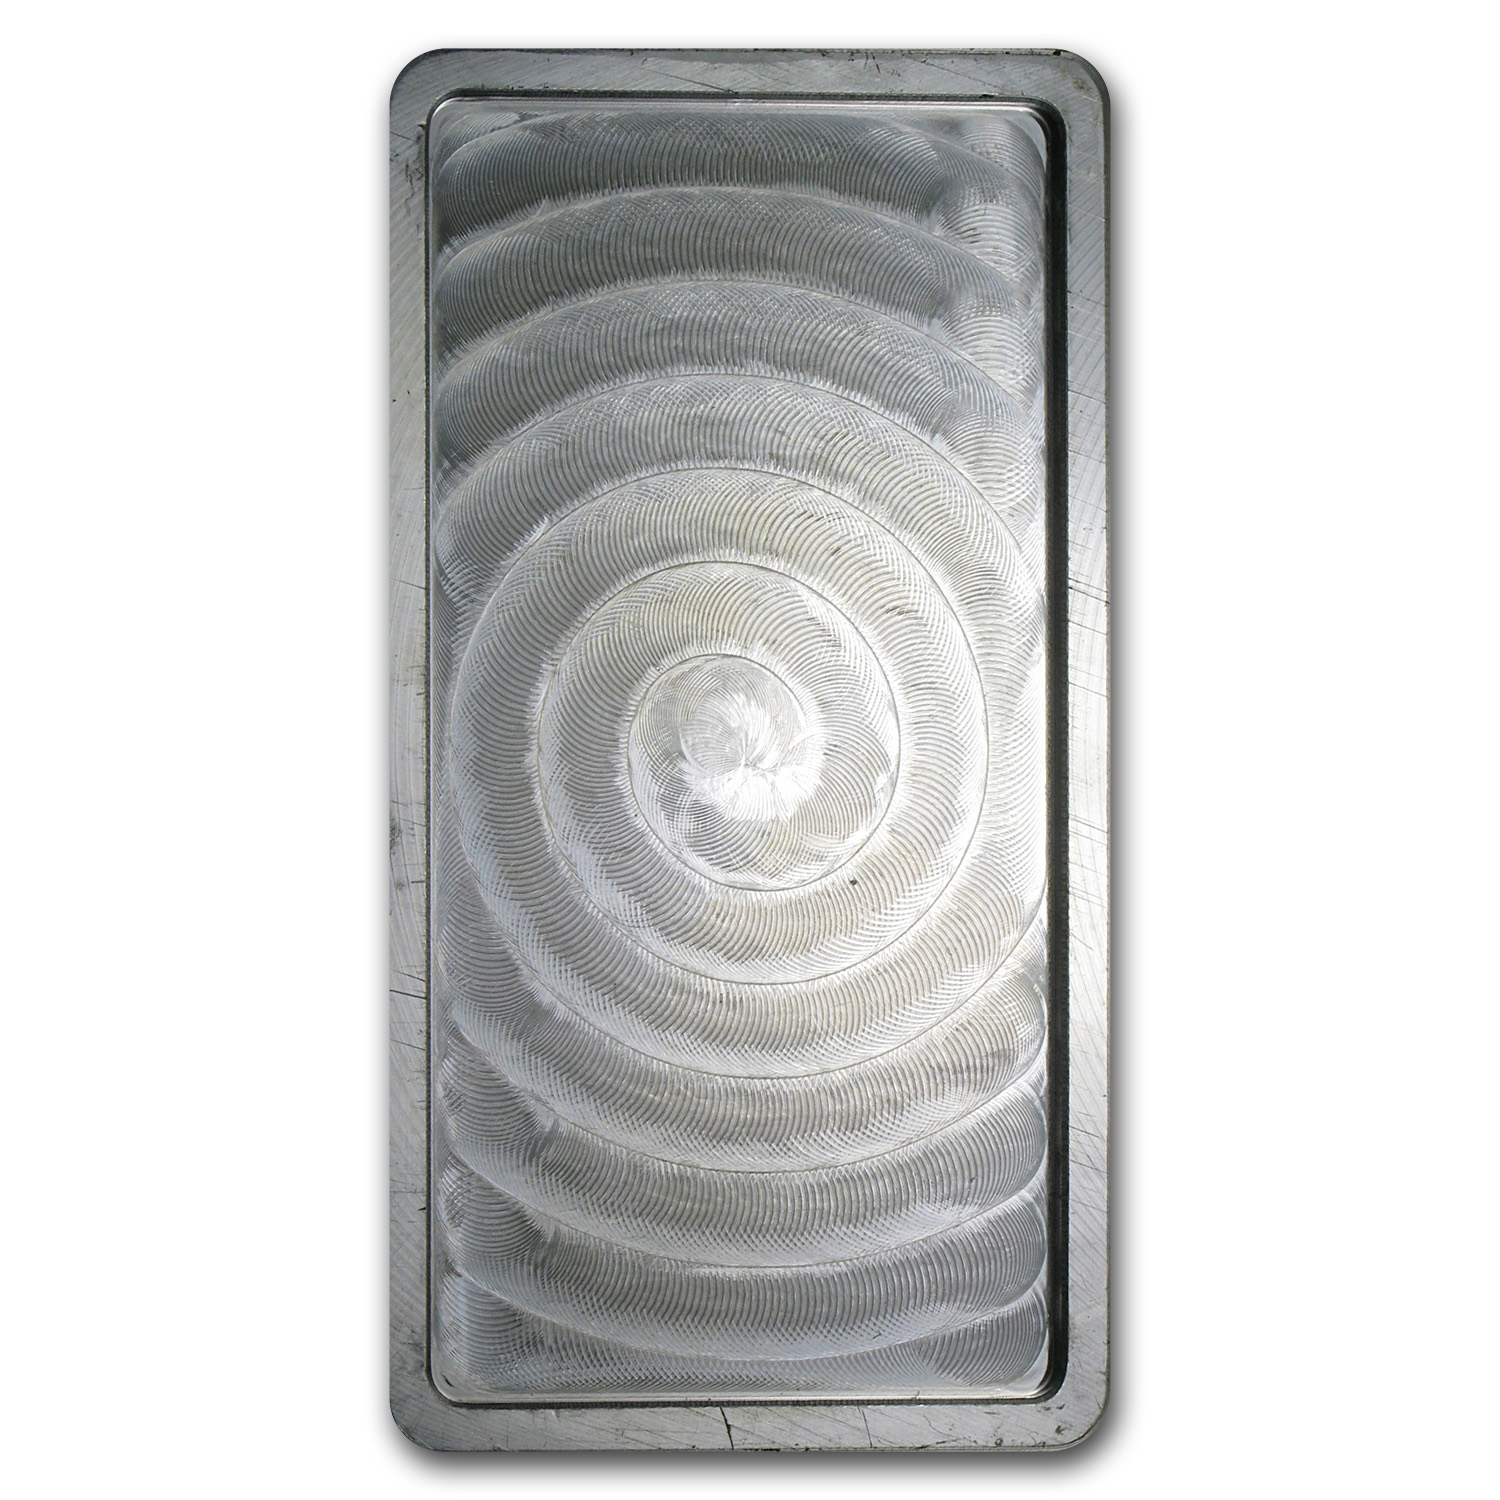 10 oz Silver Bars - Academy (Pressed, Stackable)